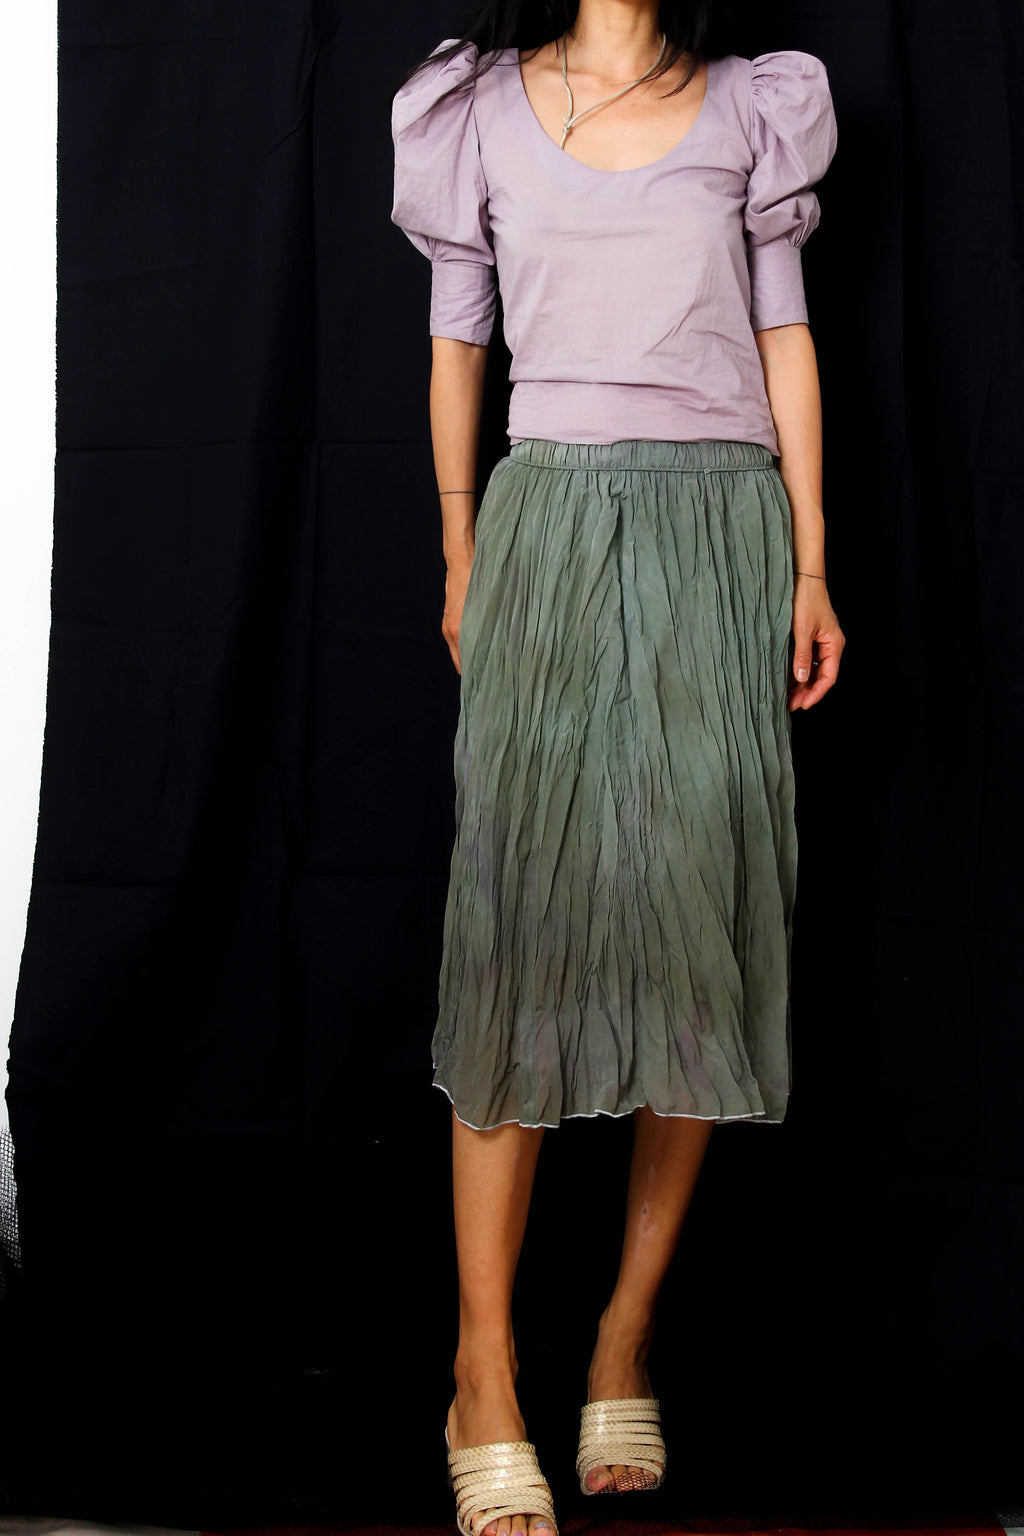 Silk Skirt in Kale